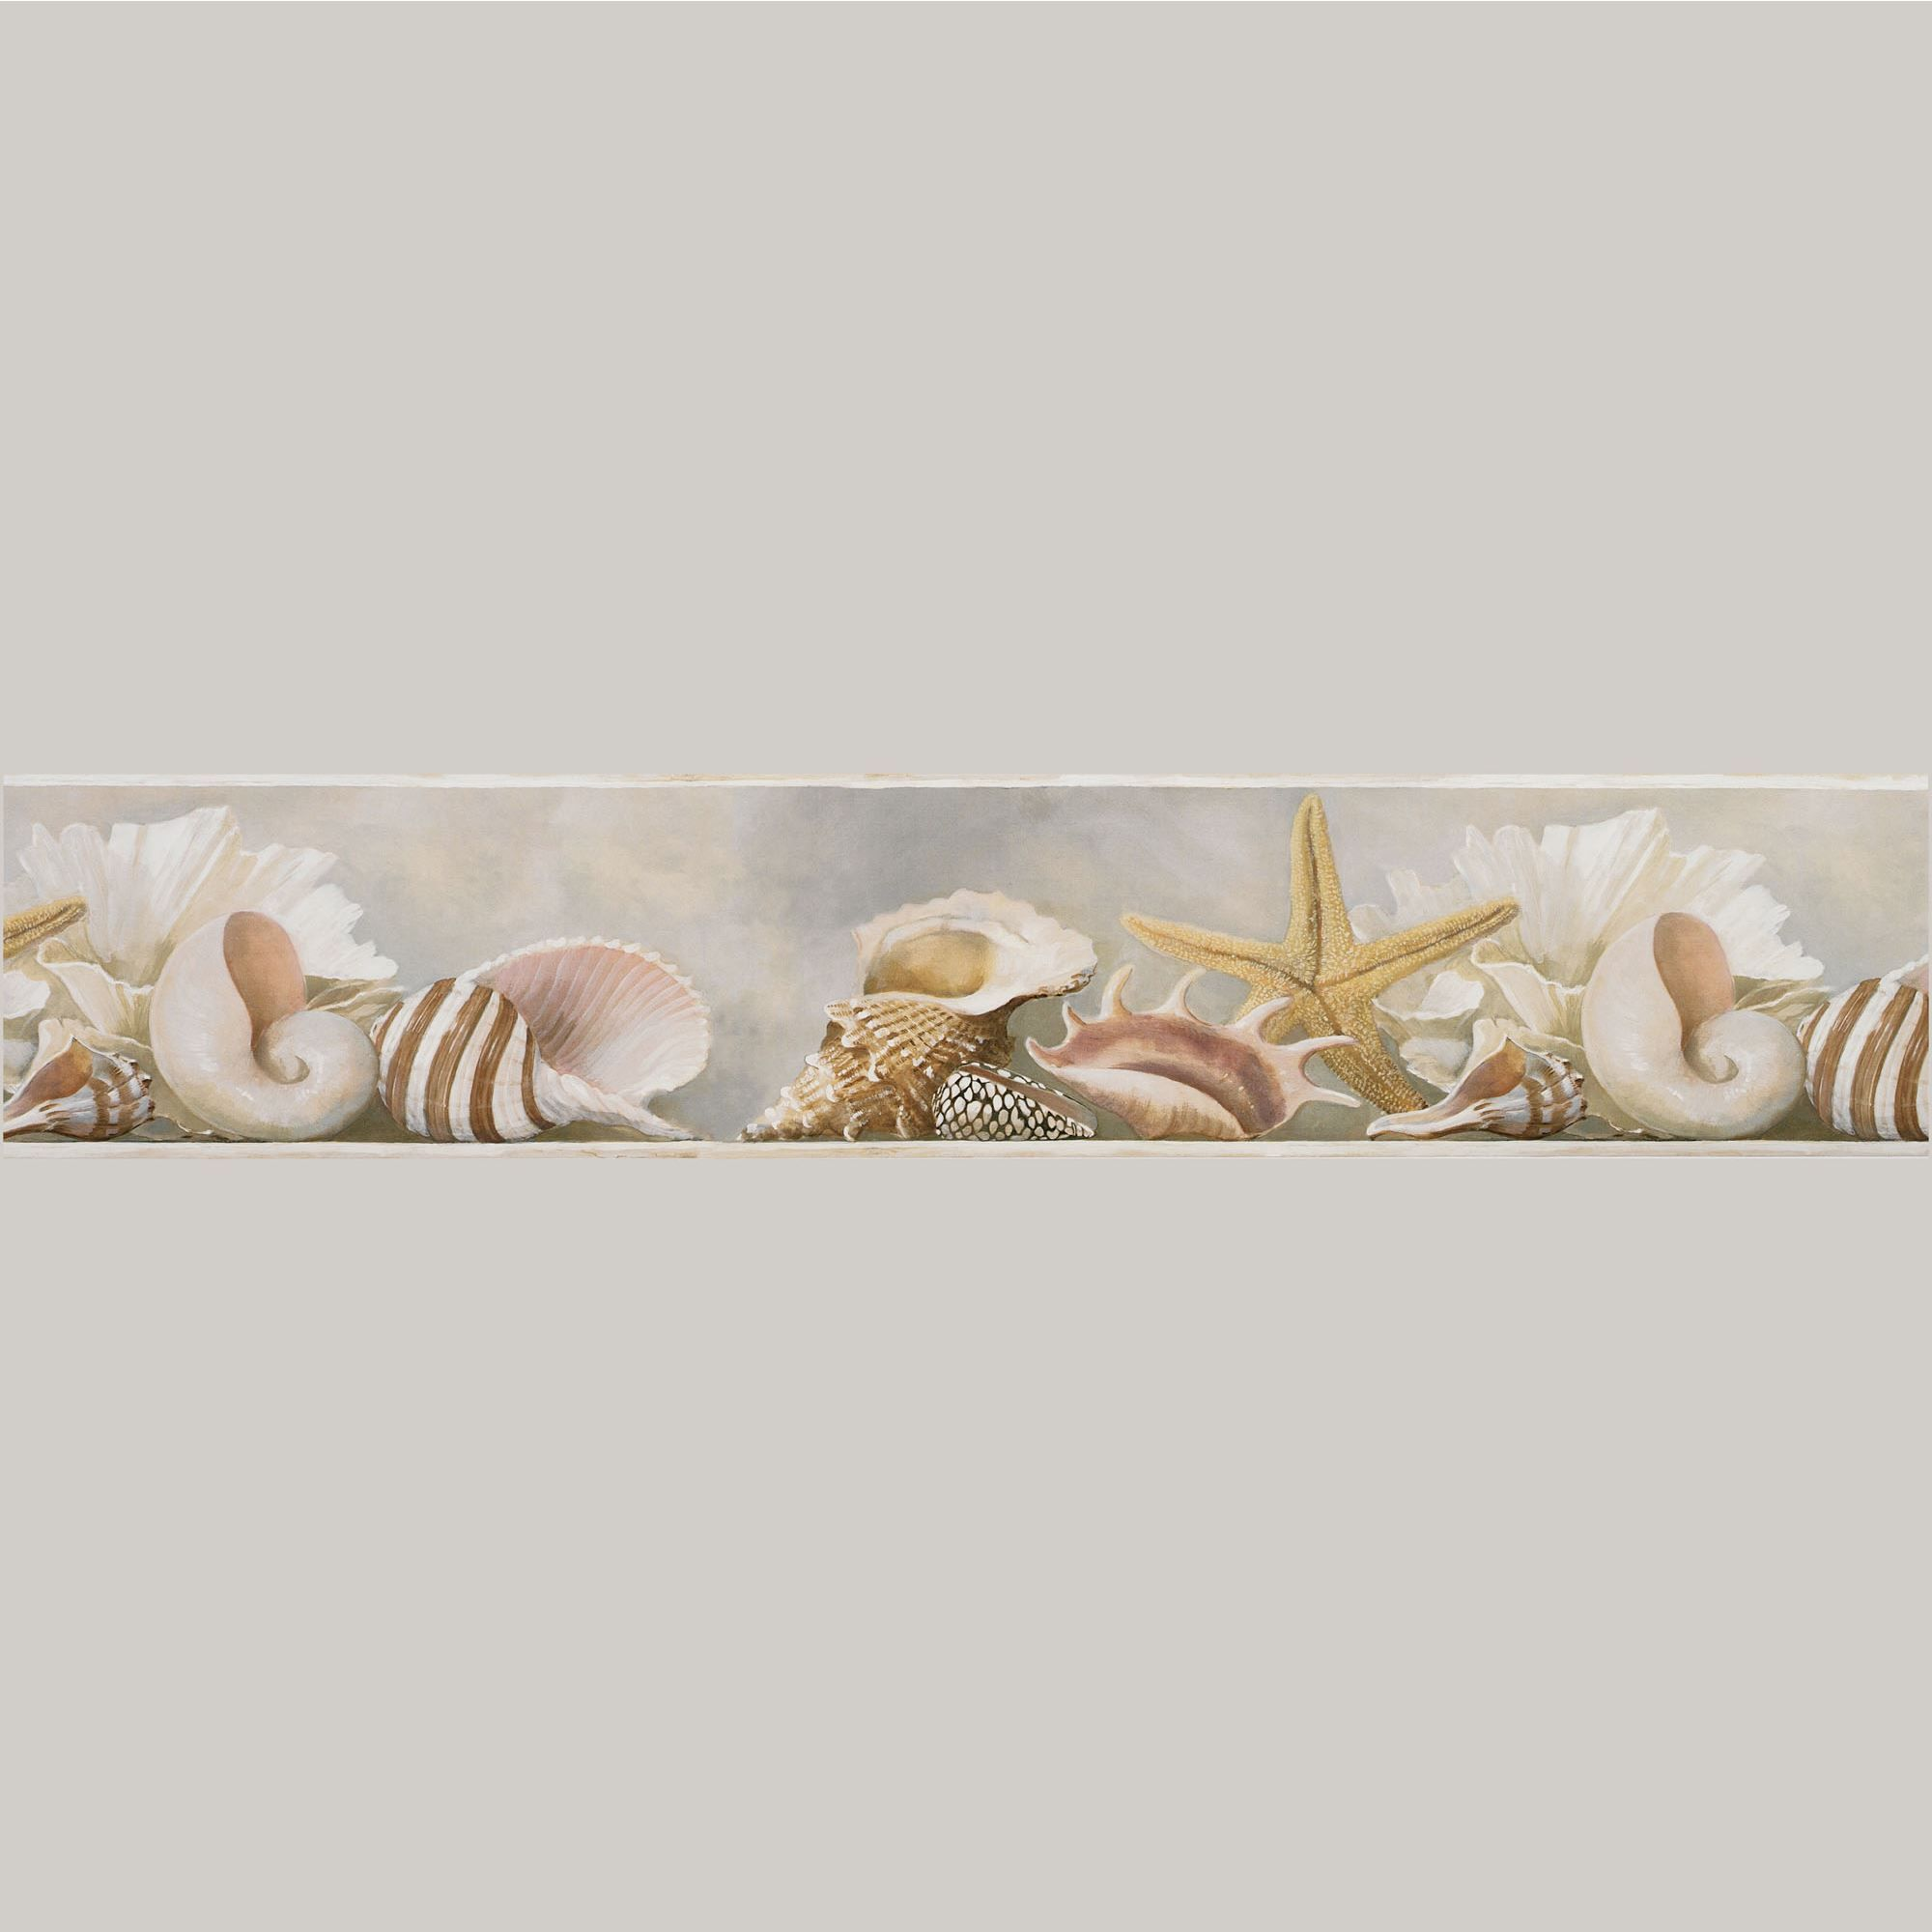 Coastal Shells Wallpaper Border Wallpaper border